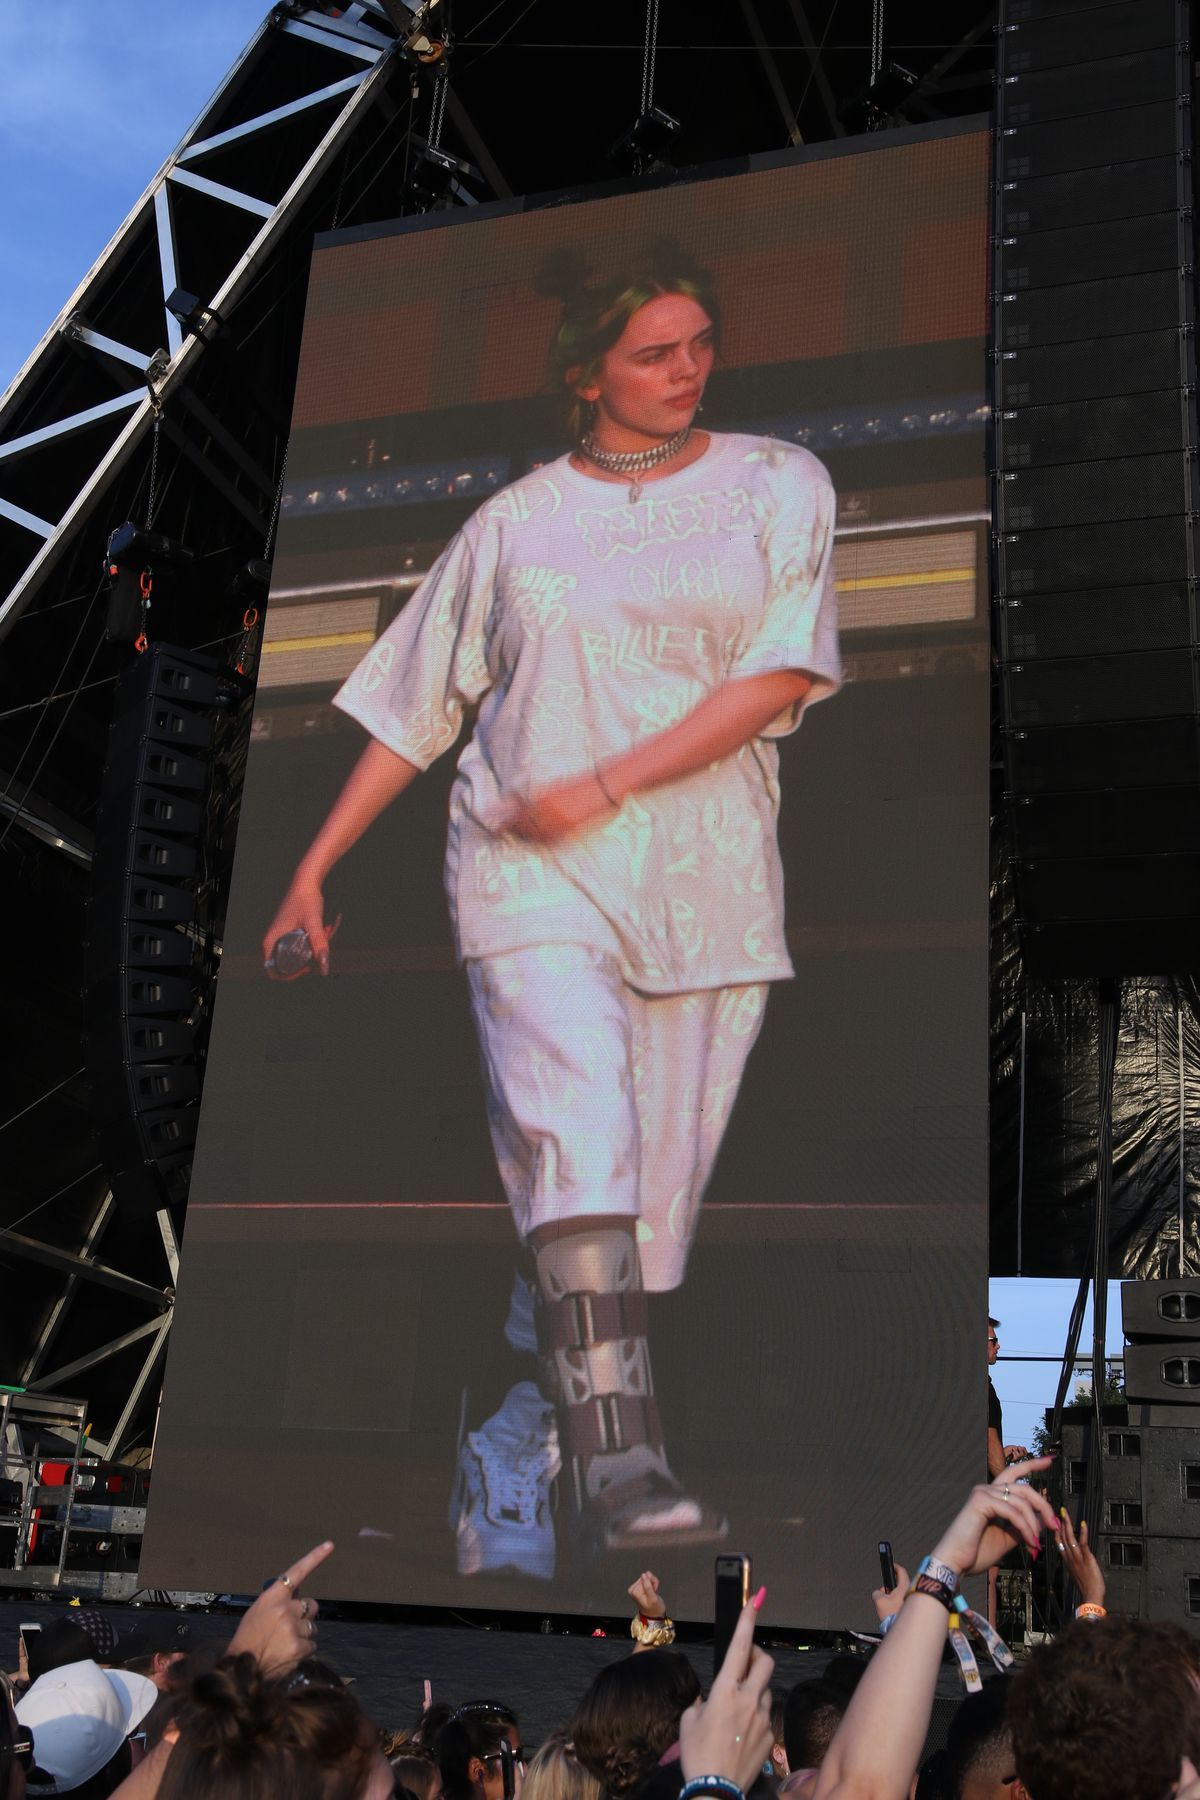 Billie Eilish, seen on one of the jumbotrons, wears a cast on her right leg.